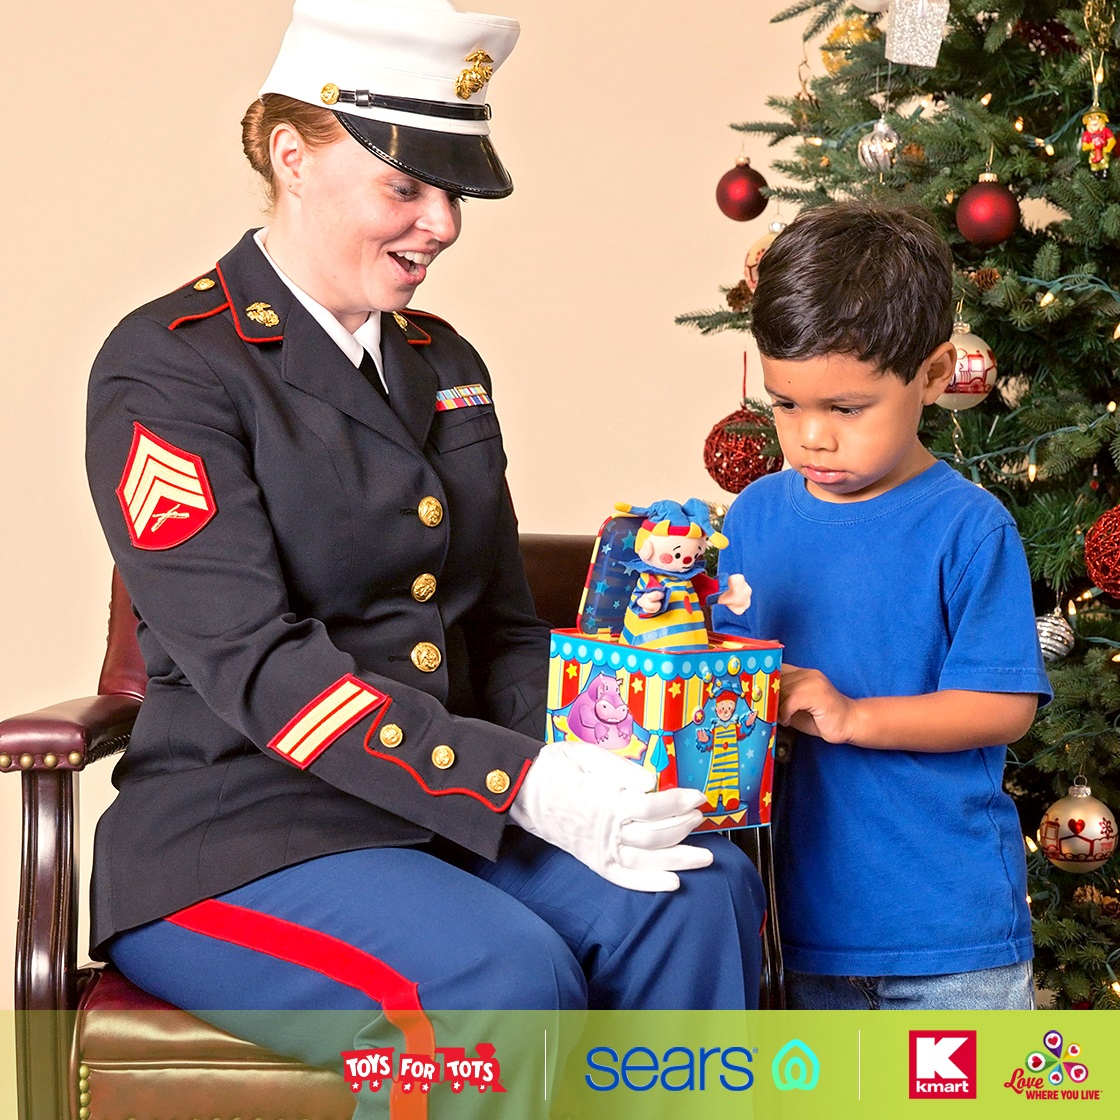 We think every child deserves a magical holiday. And we're making that happen. Donate at your local @Sears checkout or purchase and donate a toy at your @Kmart store.